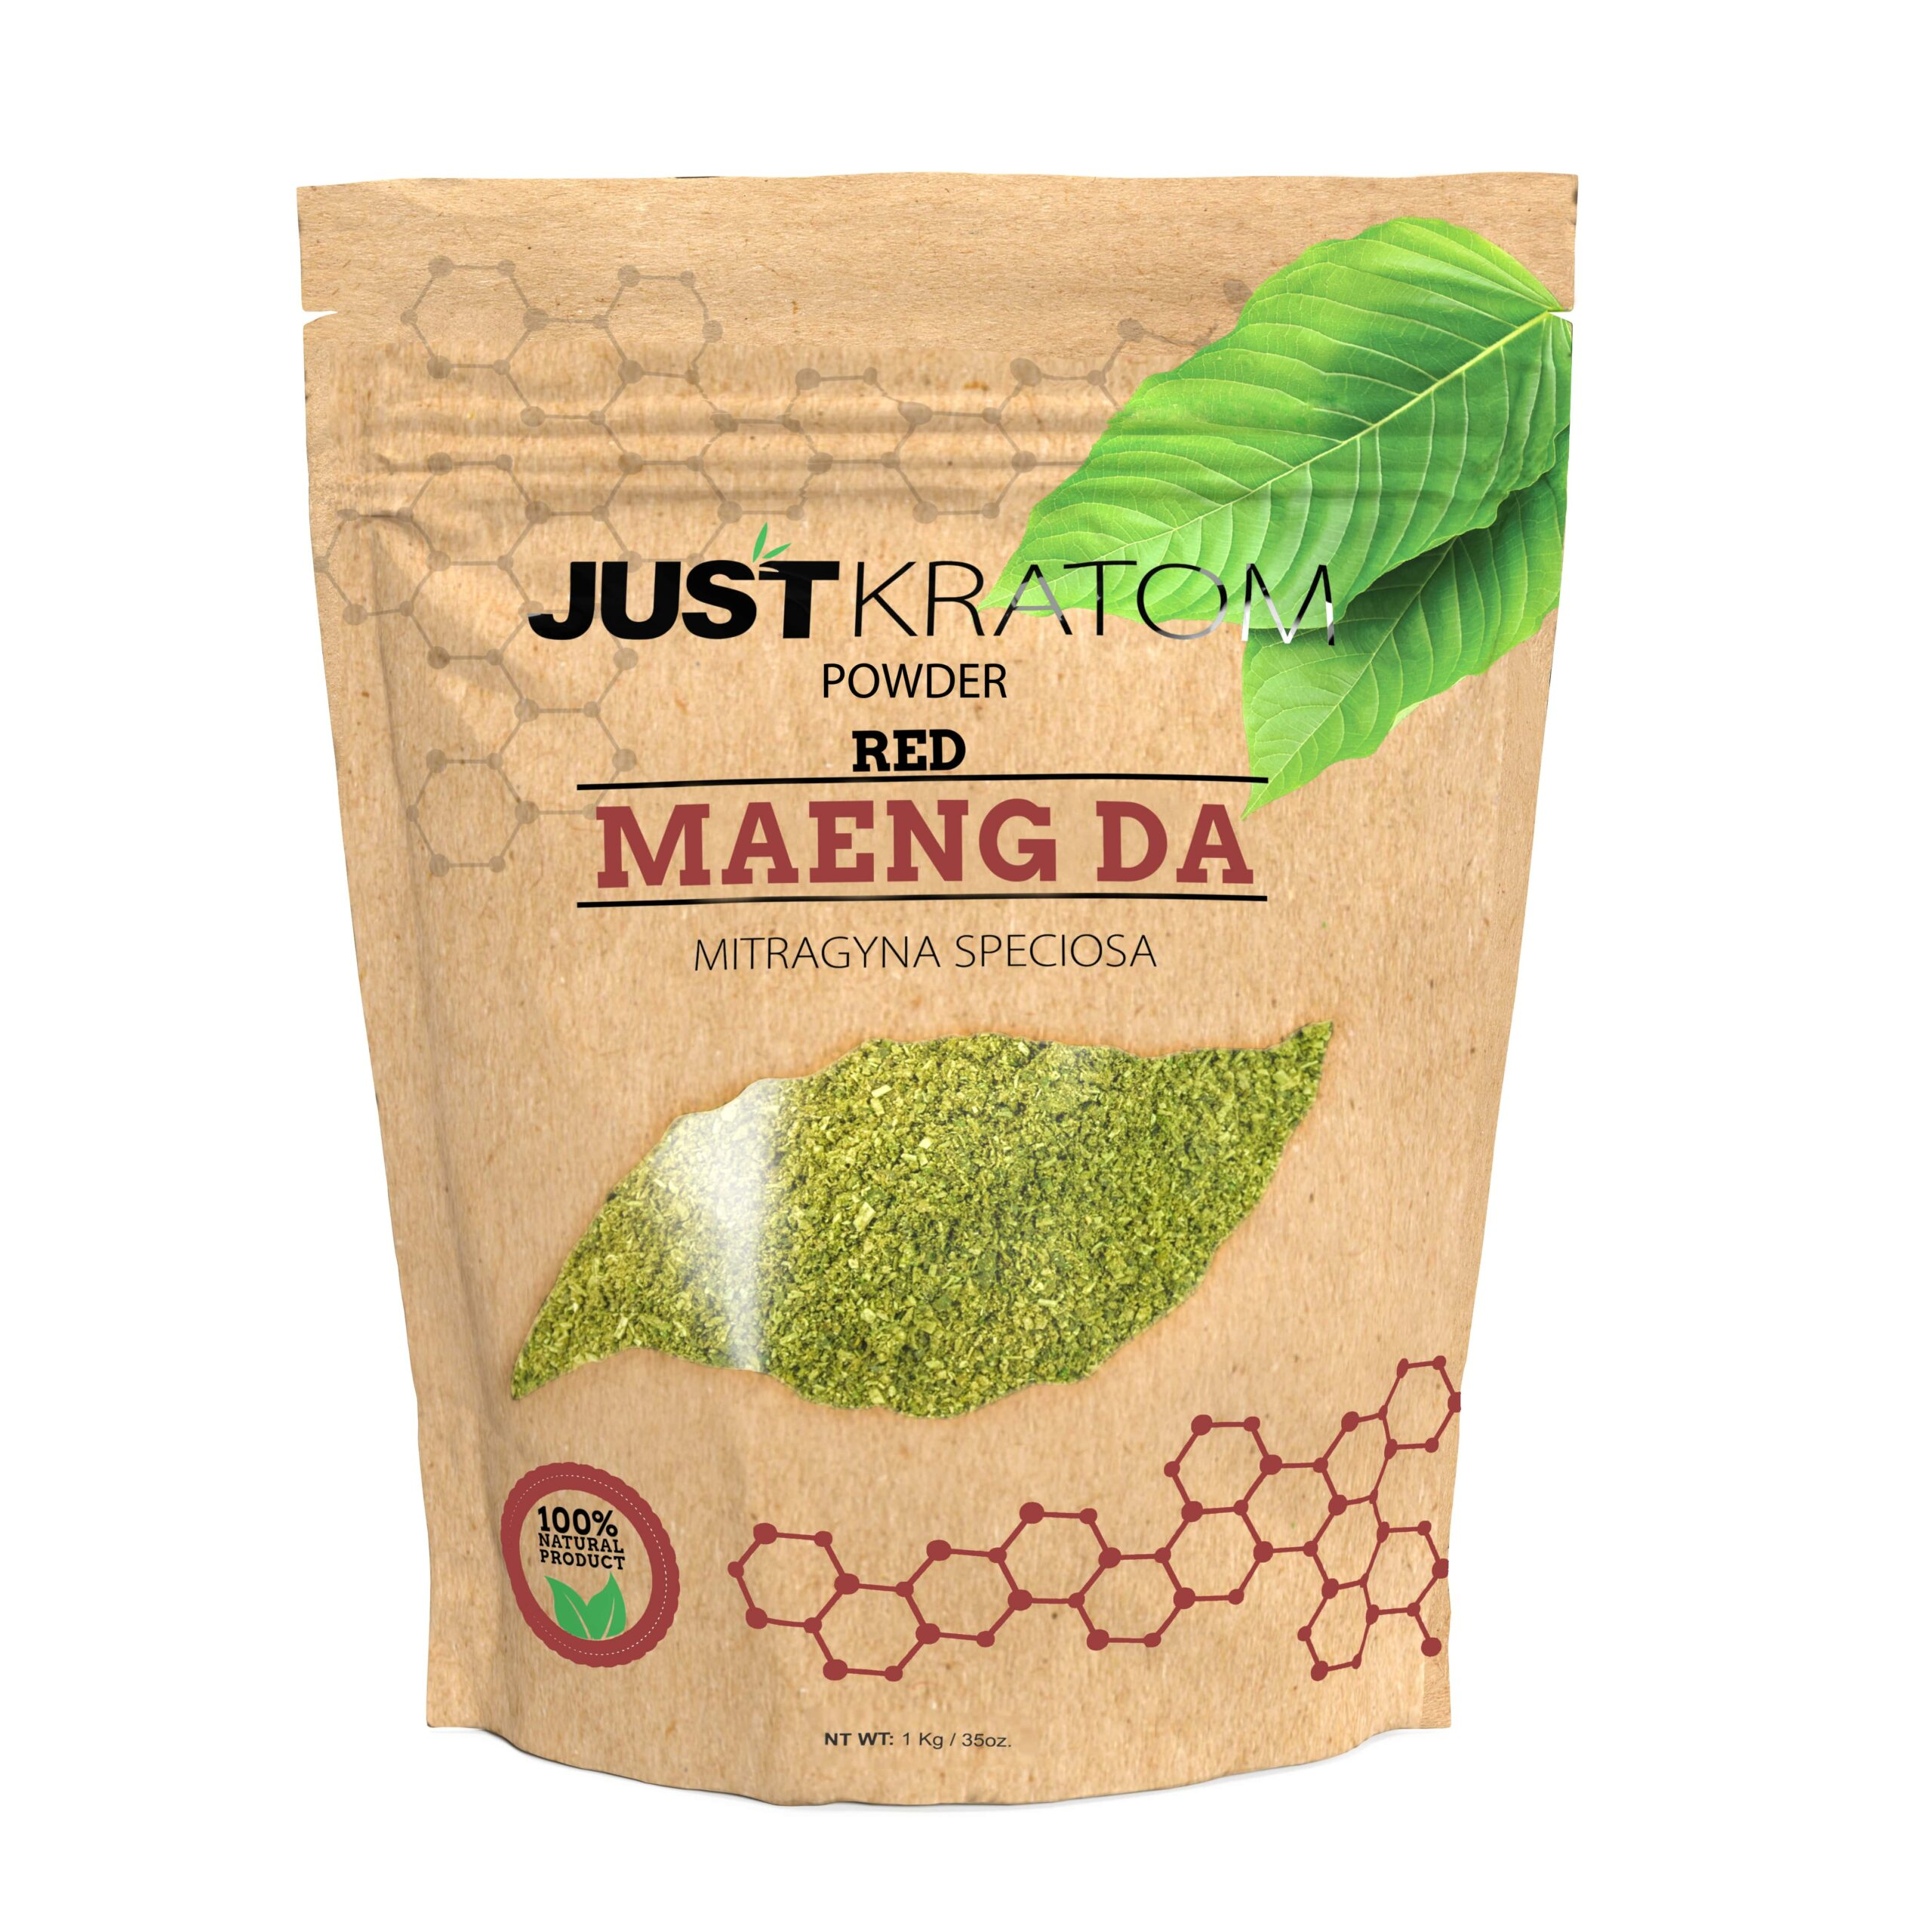 What Kind Of Kratom Should I Buy